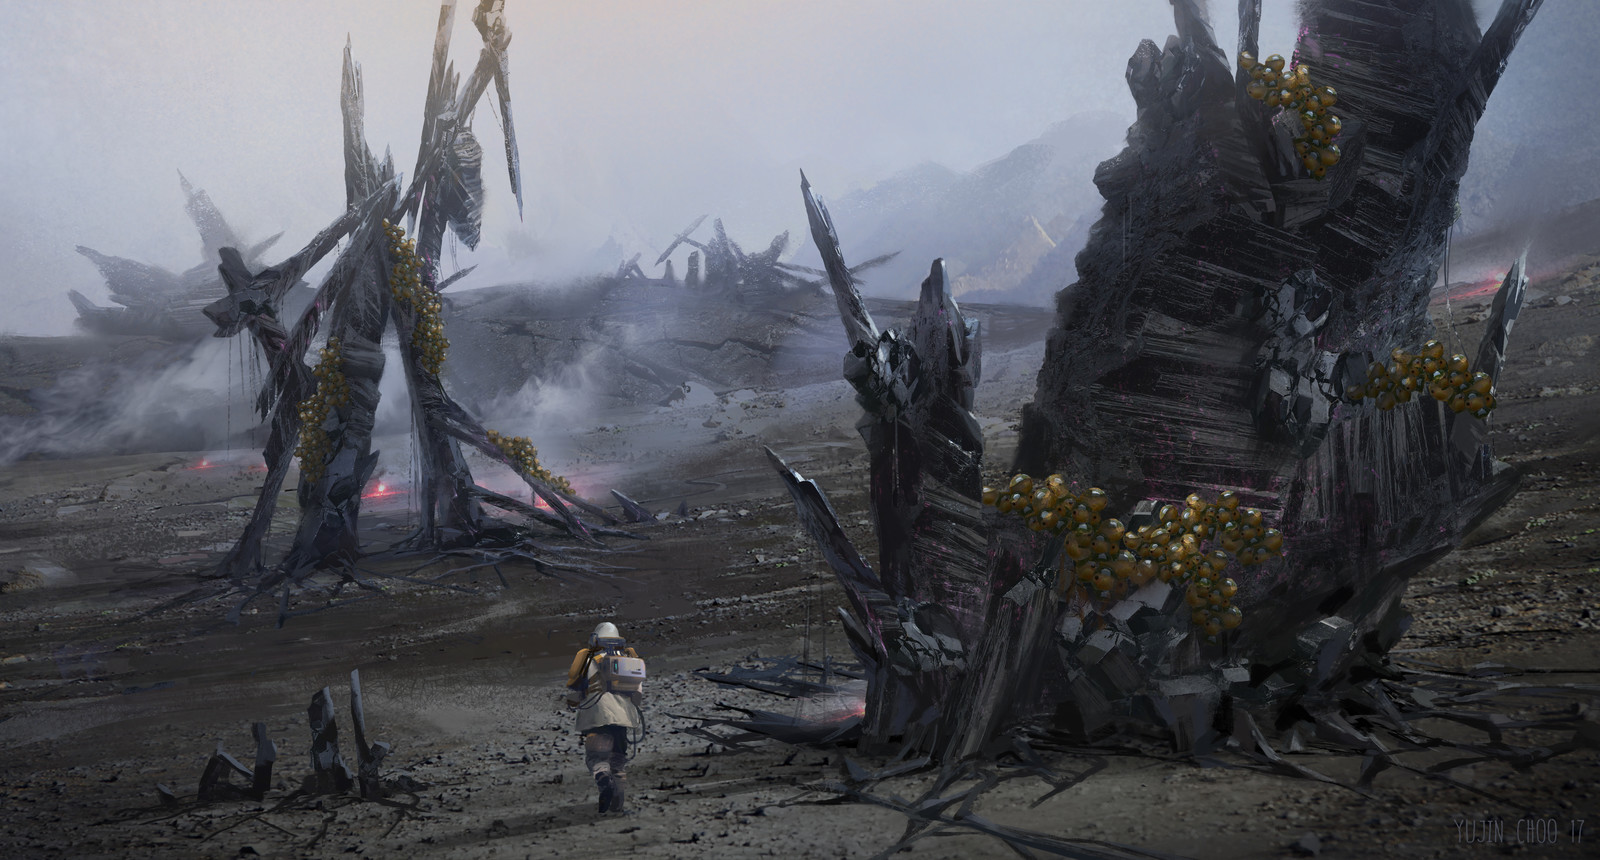 Earth is now corrupted by alien life forms, These structures are the shelter for the alien's eggs, using human bodies as soil. (I know it is disturbing!) The scene is about a scientist going toward the alien structures to study their system.